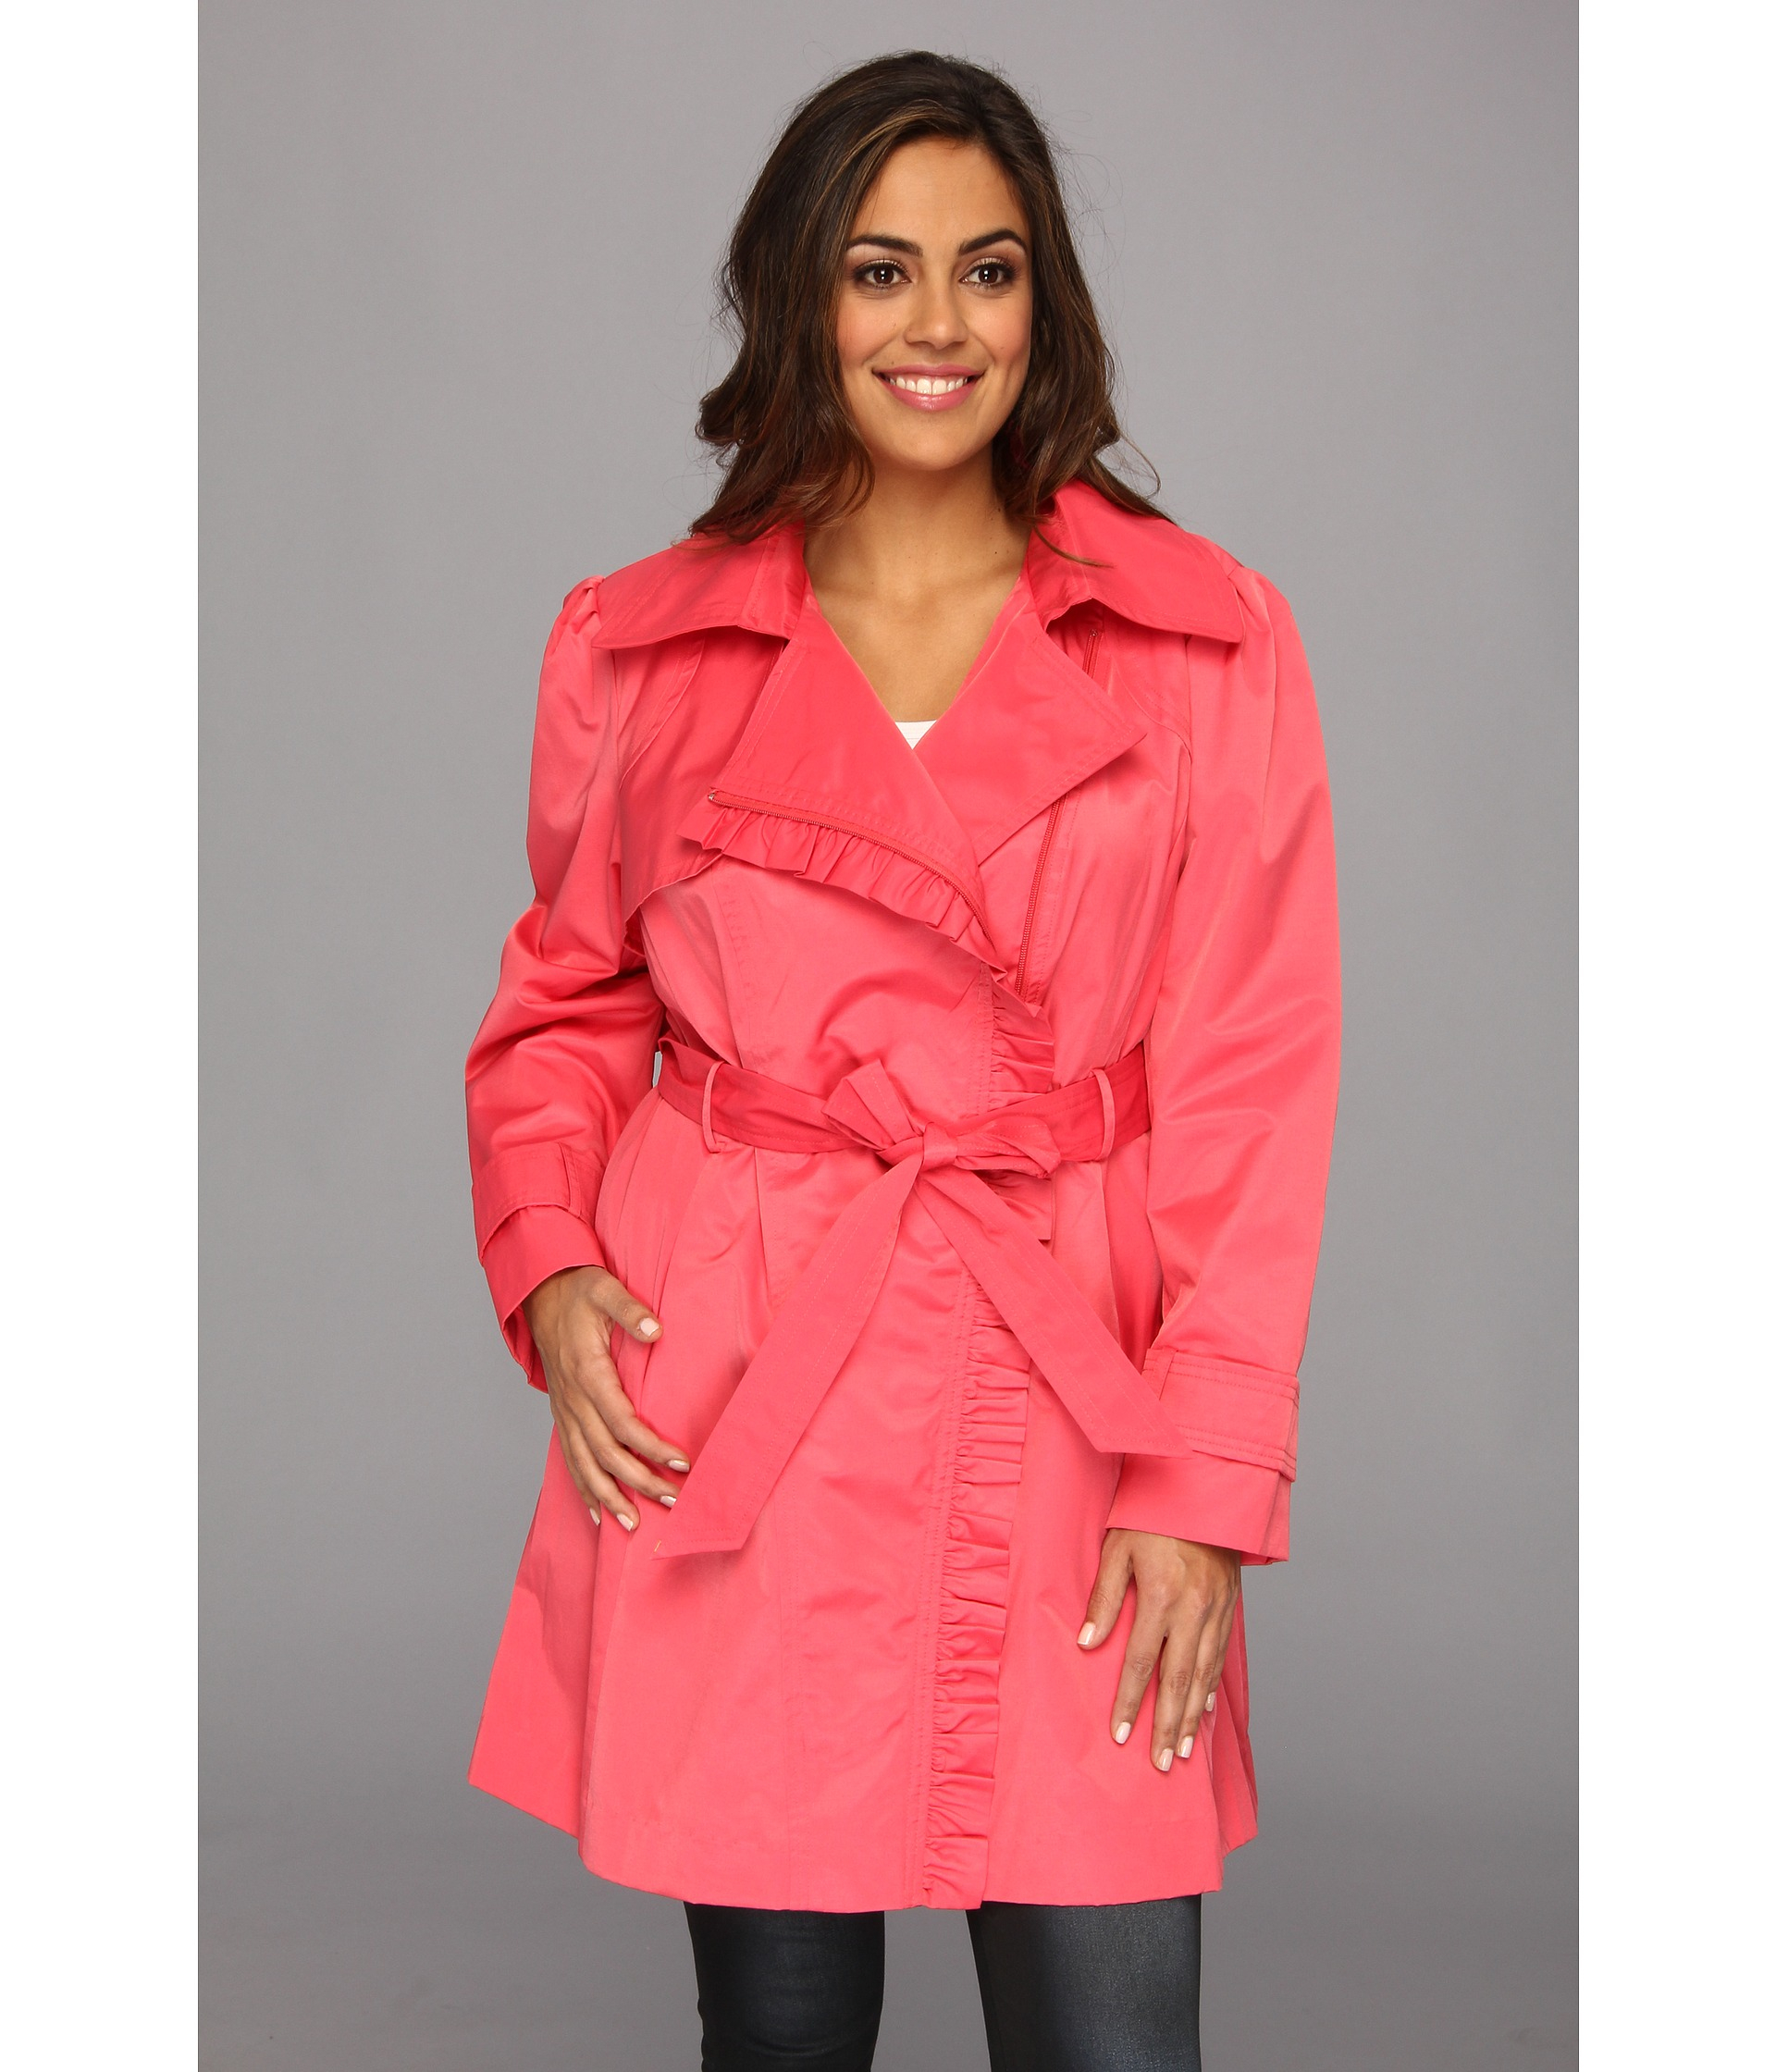 c12a33d64aeb5 Lyst - Jessica Simpson Plus Size Ruffle Trim Belted Trench Coat in ...